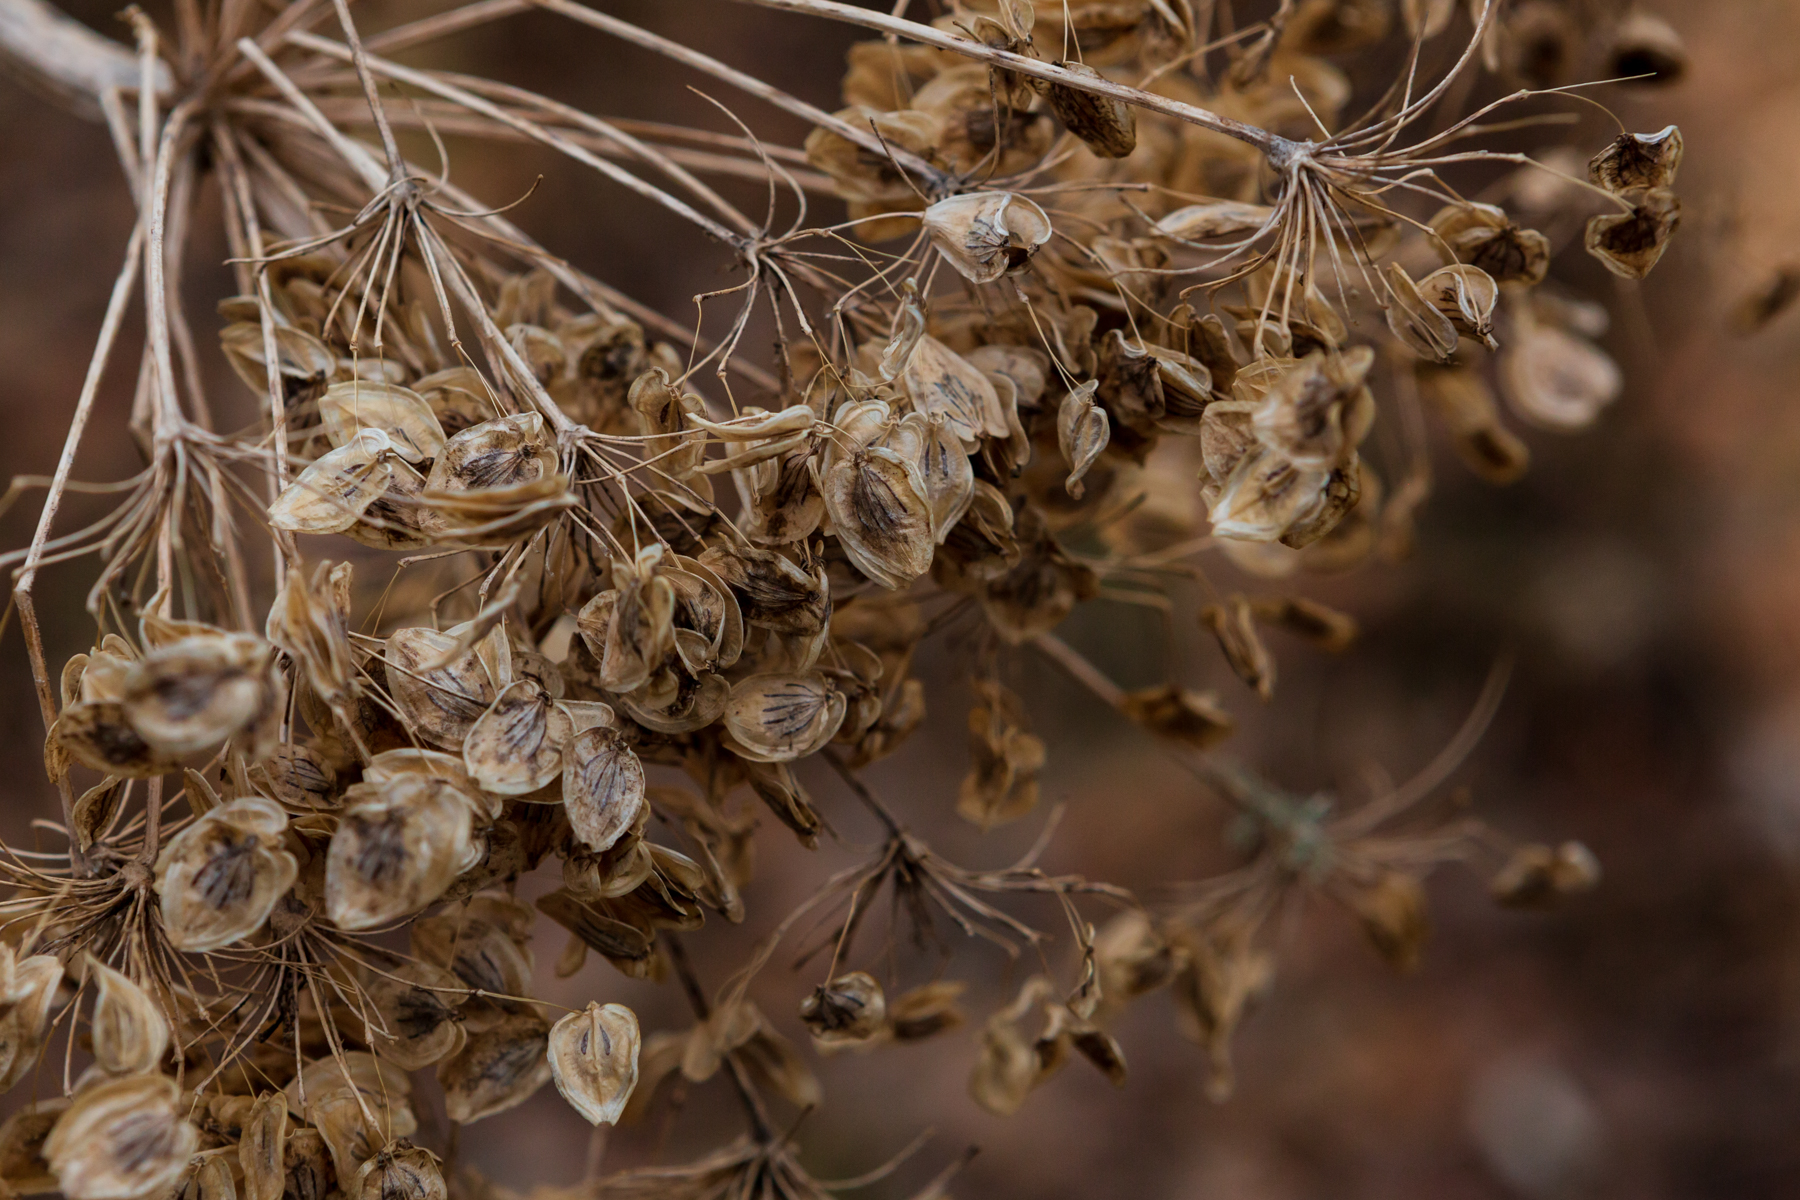 close up of dried plant